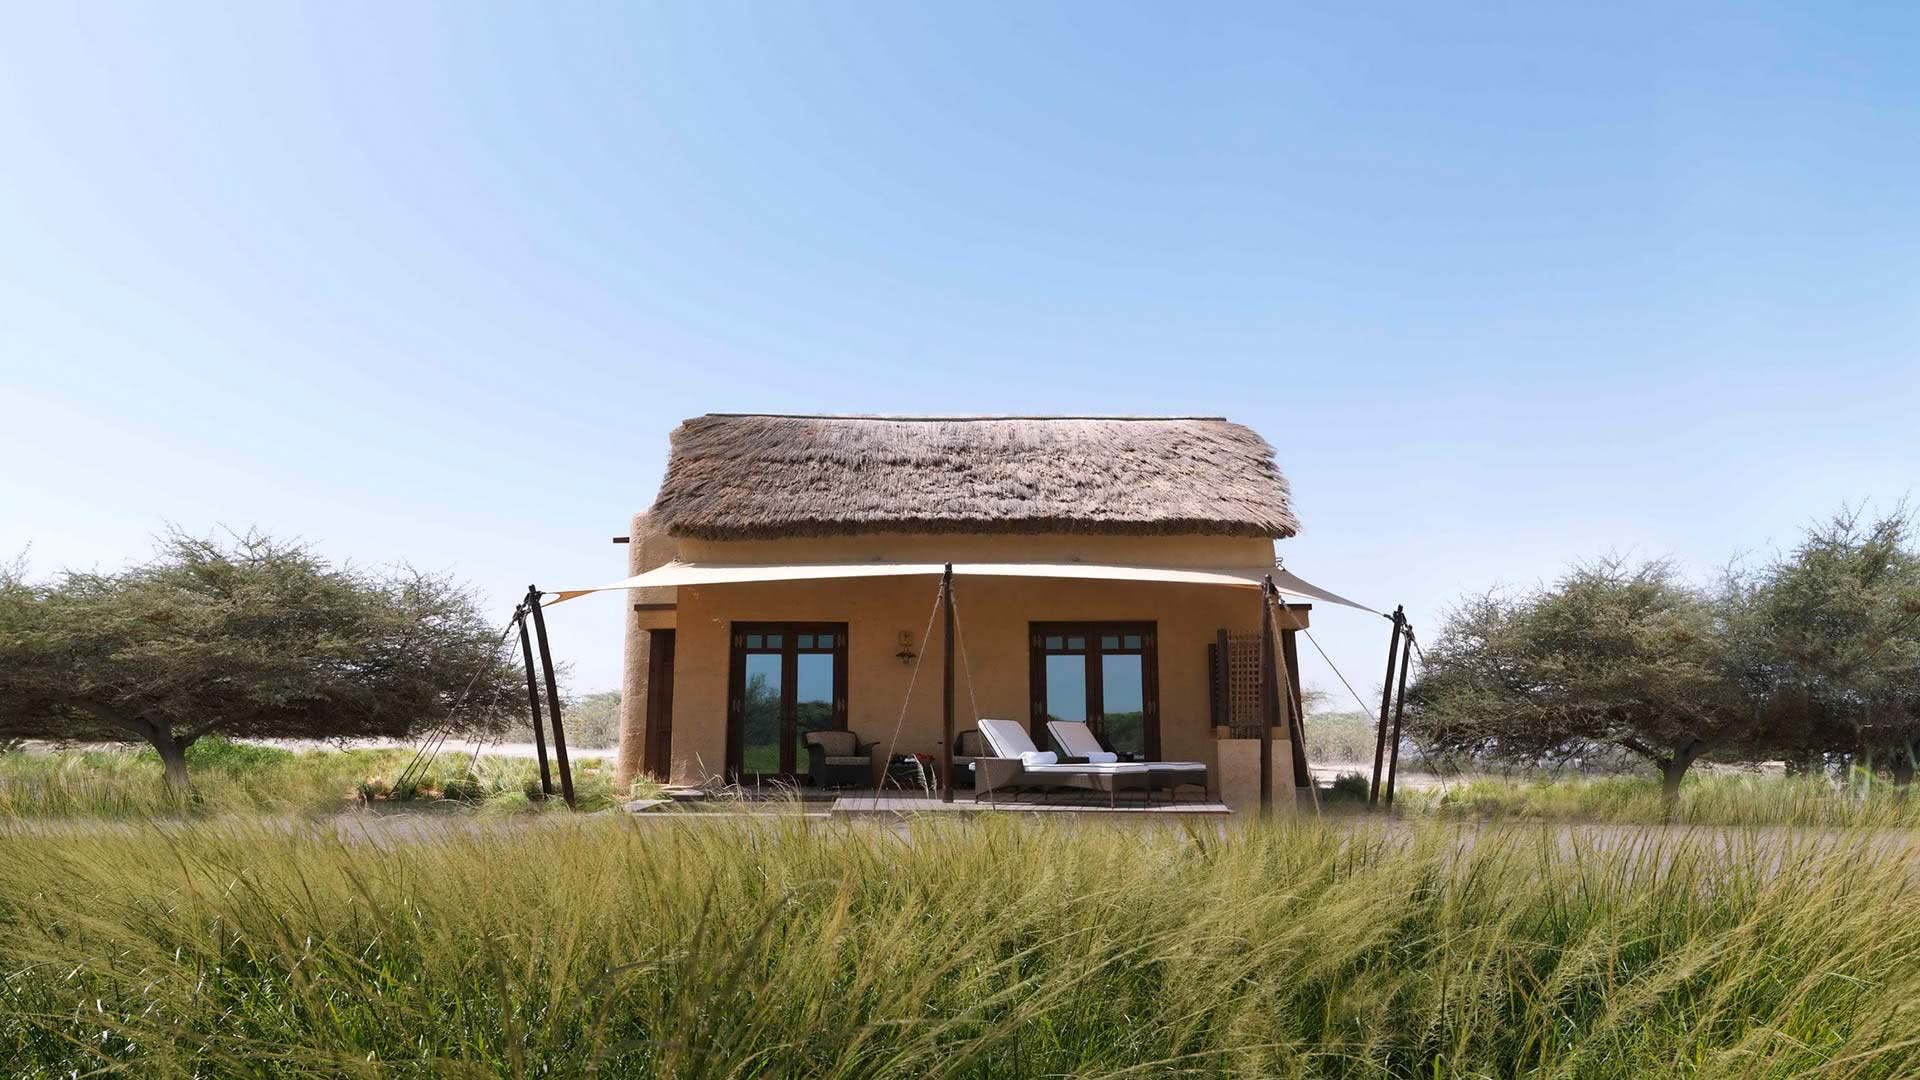 https://assets.anantara.com/image/upload/q_auto/media/minor/anantara/images/anantara-sir-bani-yas-island-al-sahel-villa-resort/the-resort/desktop-banner/anantara_al_sahel_exterior_1920x1080.jpg